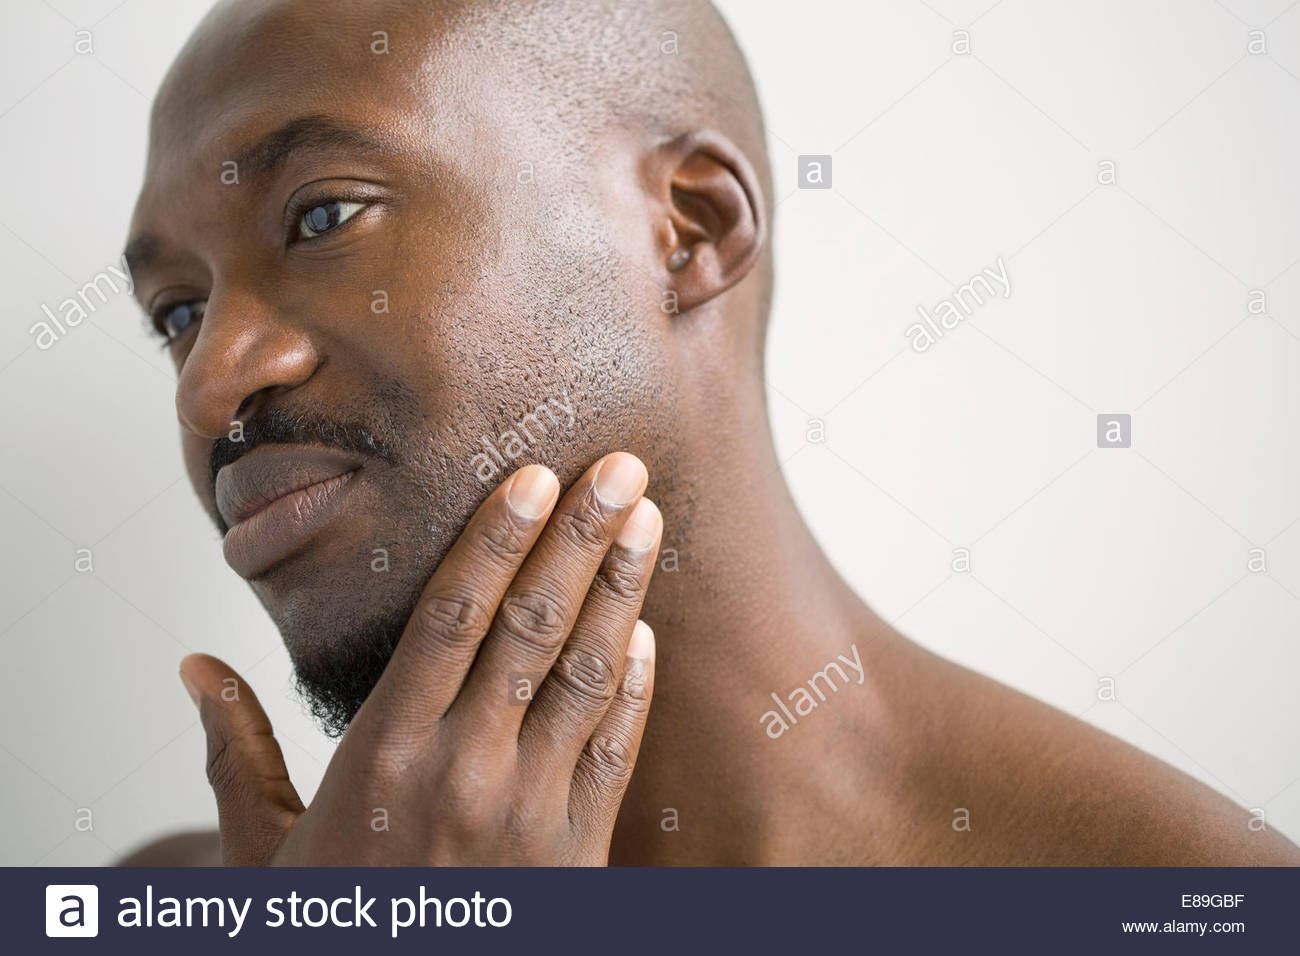 Close up of man rubbing stubble on face - Stock Image